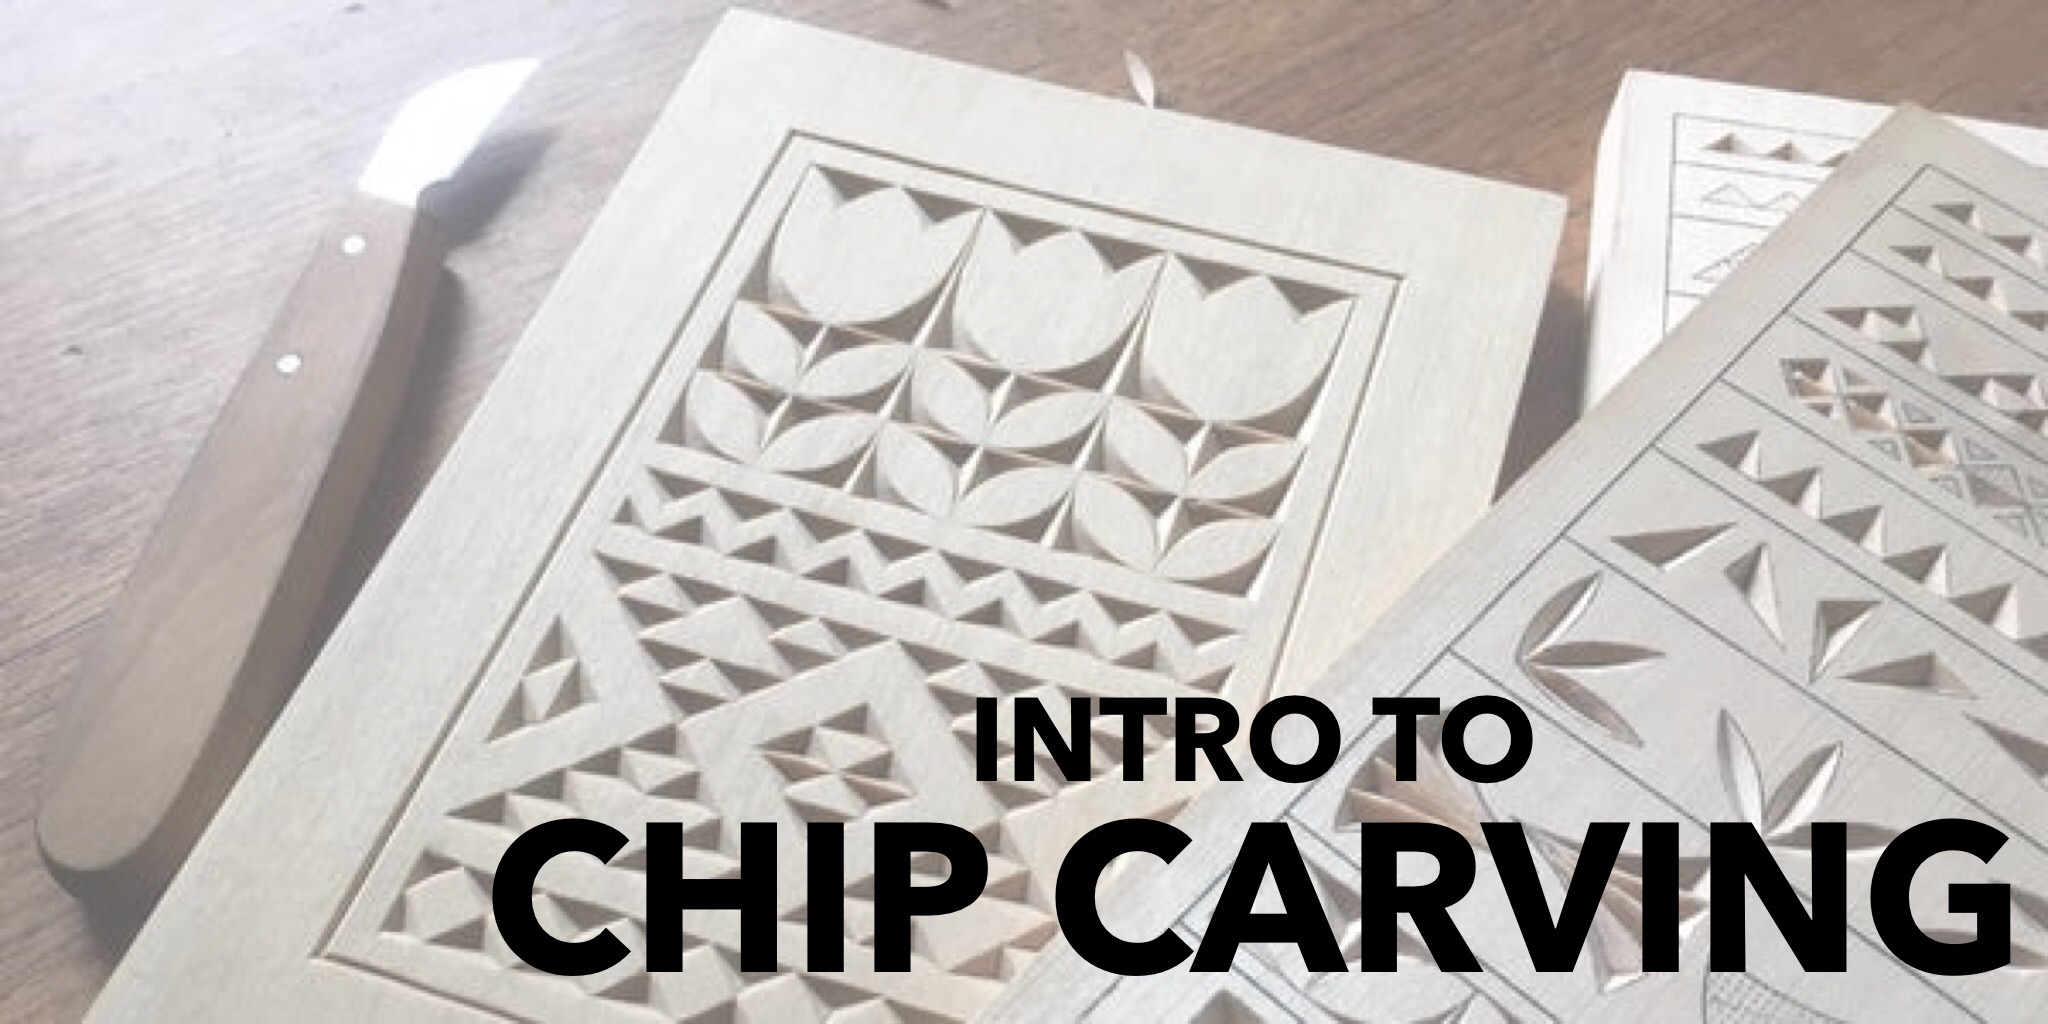 Intro Chip Carving.jpeg